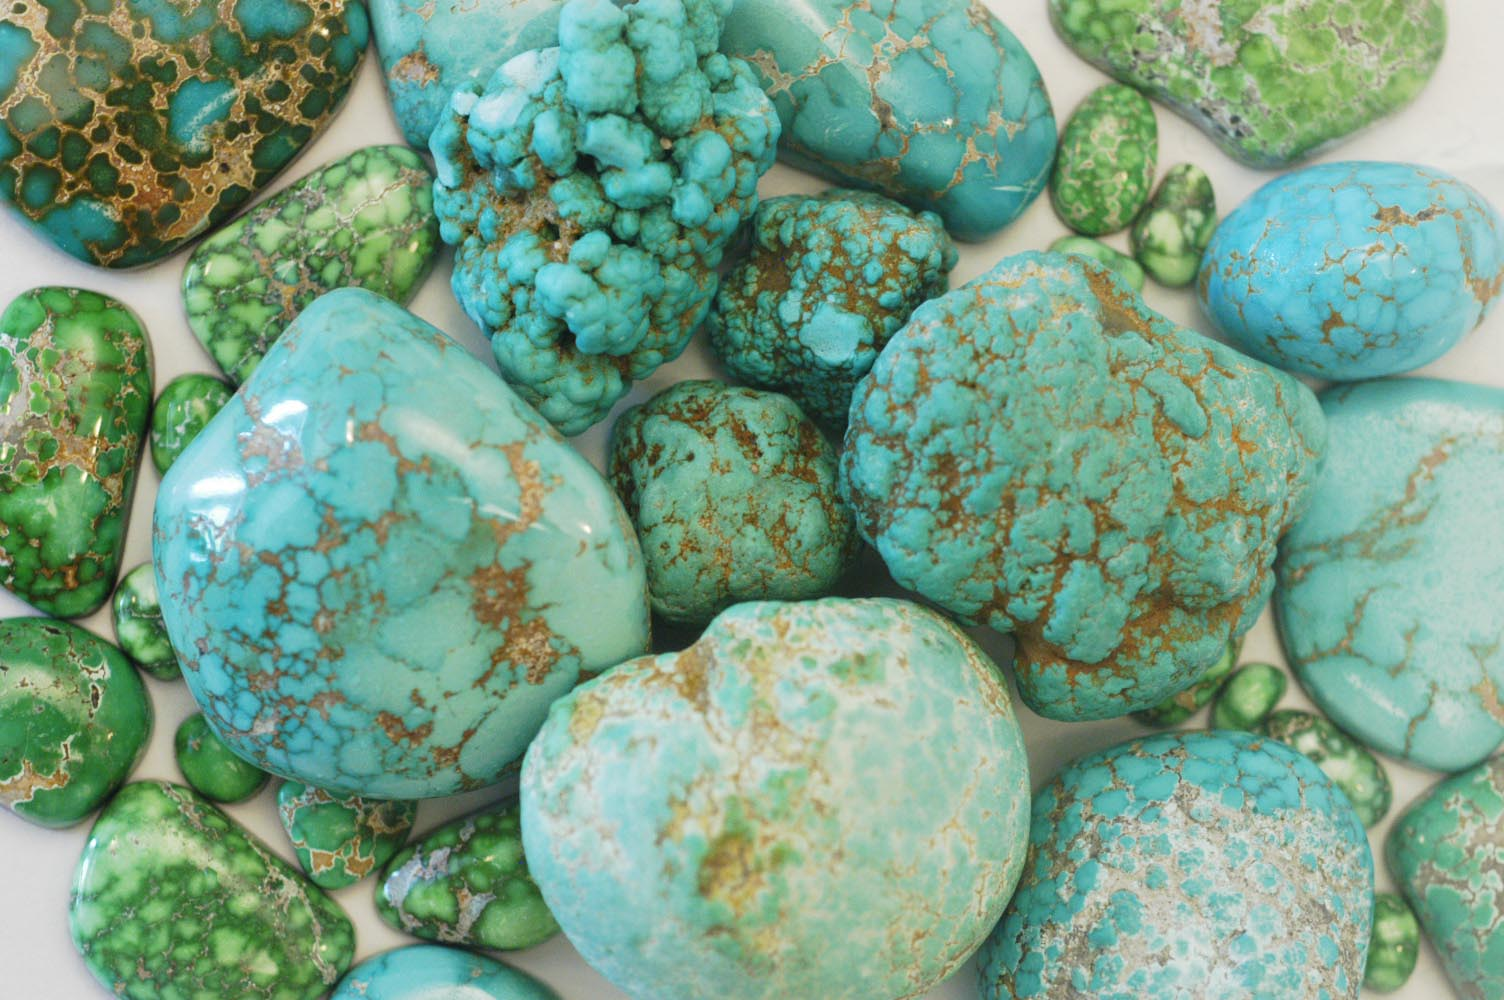 CARICO-LAKE-TURQUOISE-NEVADA NORTH AMERICAN TURQUOISE MINES